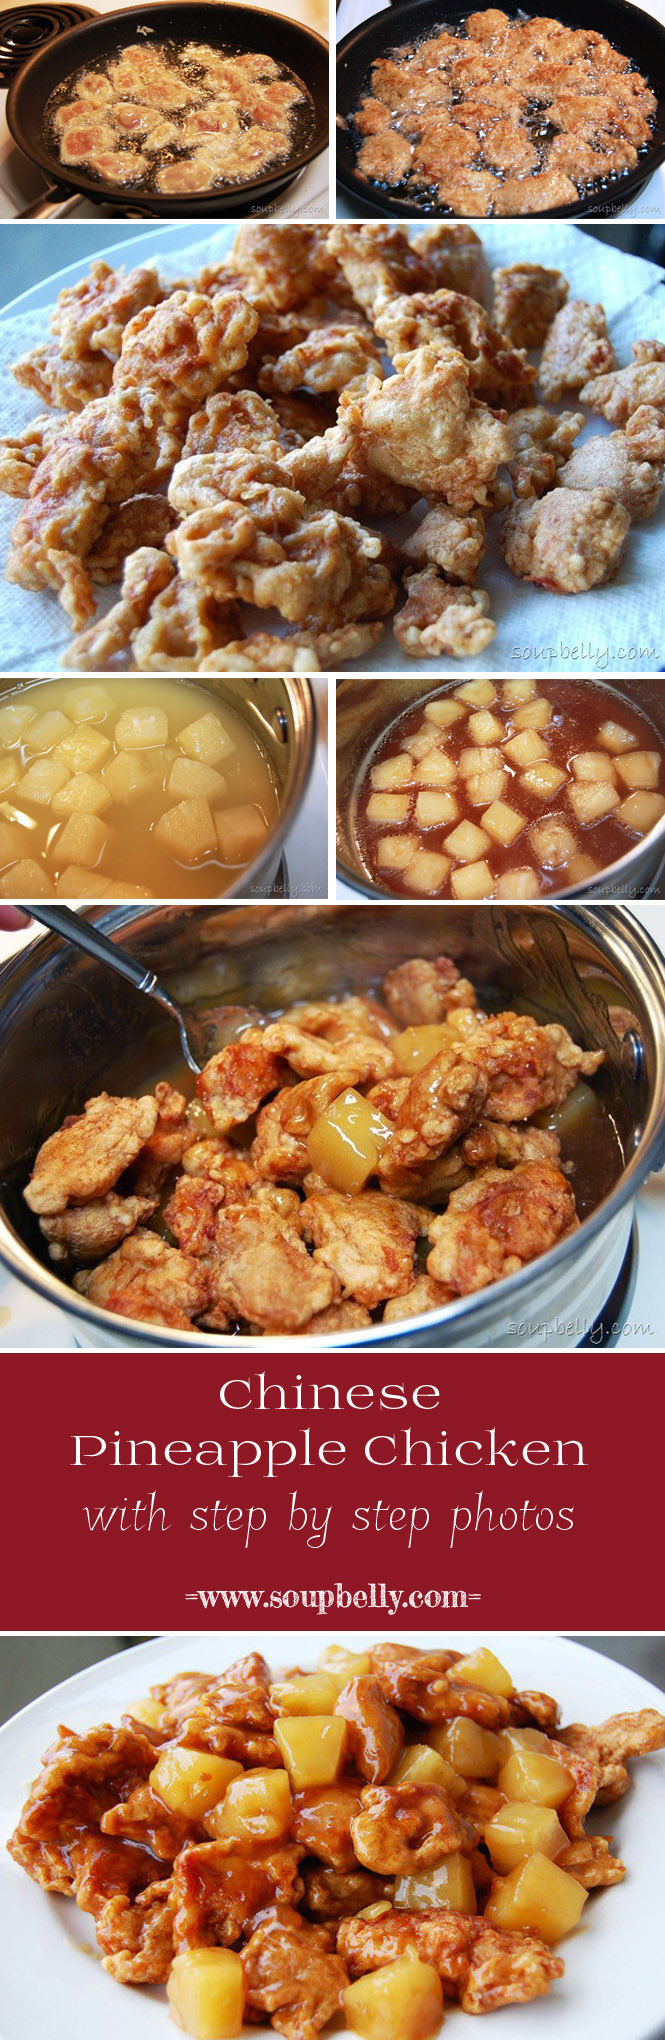 Chinese pineapple chicken soupbelly chinese pineapple chicken forumfinder Images